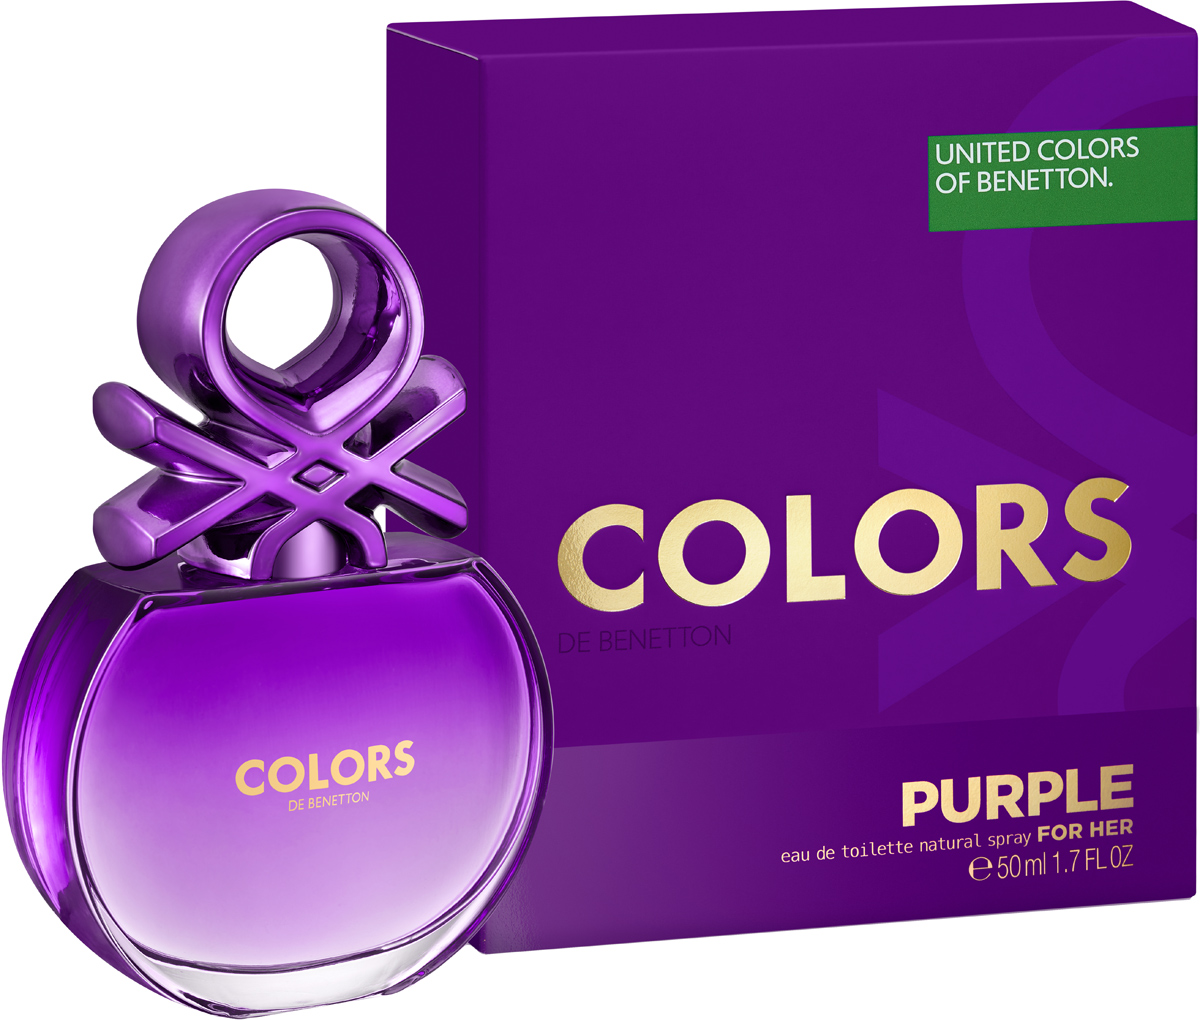 Benetton Colors Purple Туалетная вода женская, 50 мл benetton colors purple 50 мл benetton benetton colors purple 50 мл